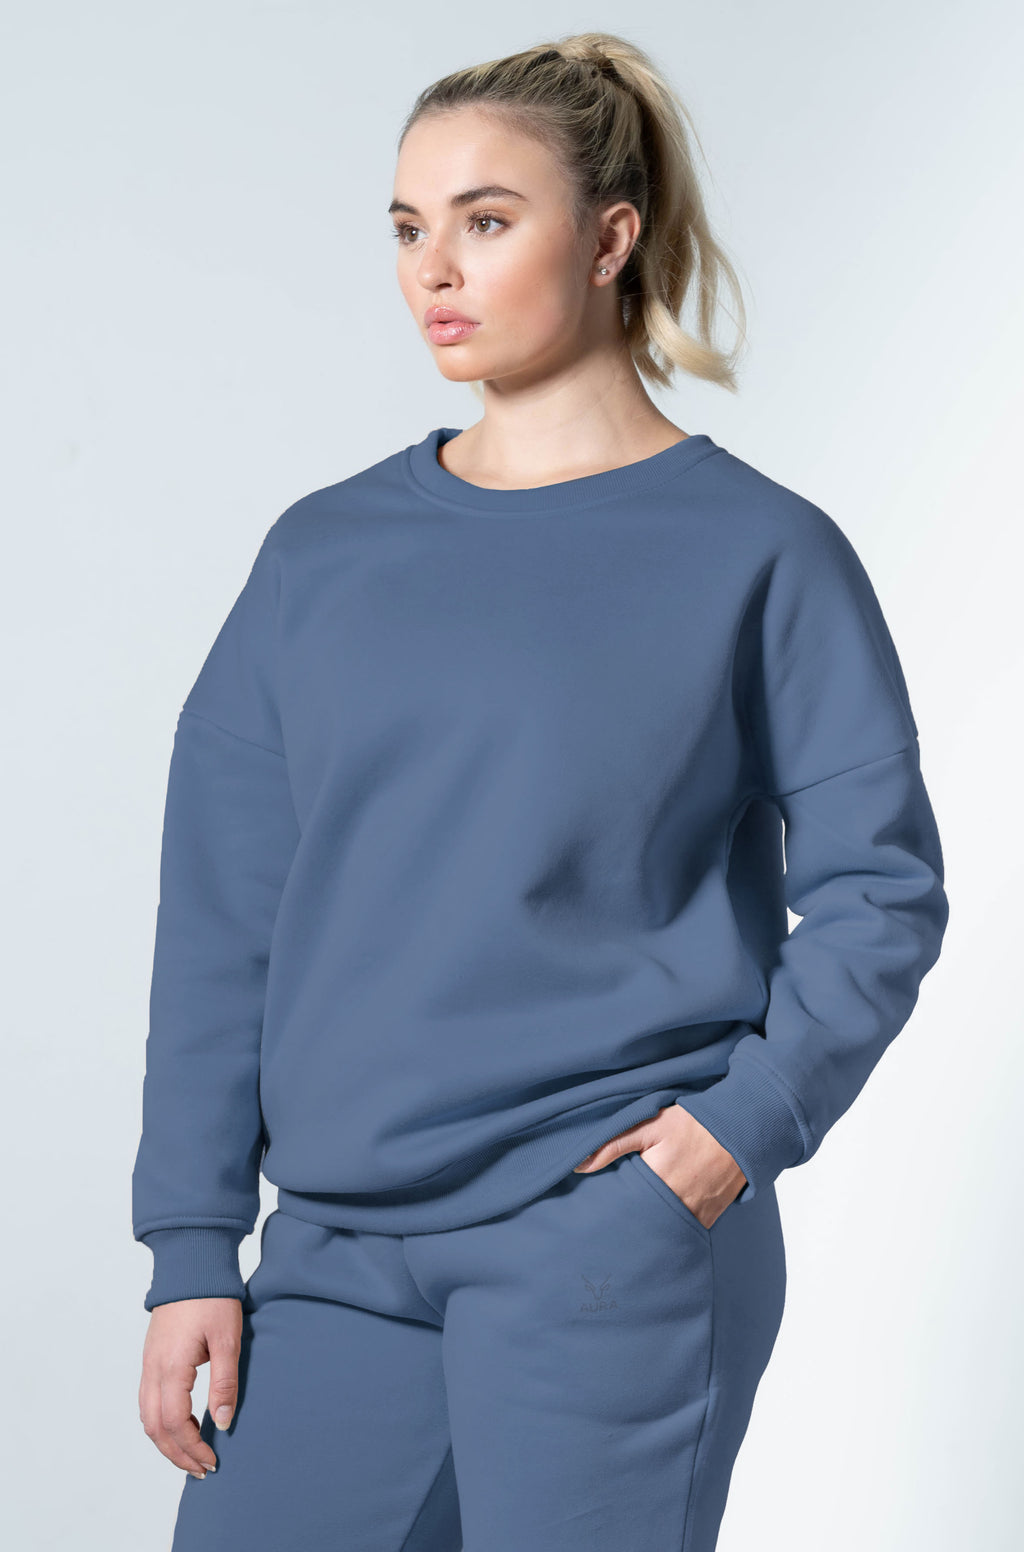 Snuggle'up Smoky Blue Oversized Sweater